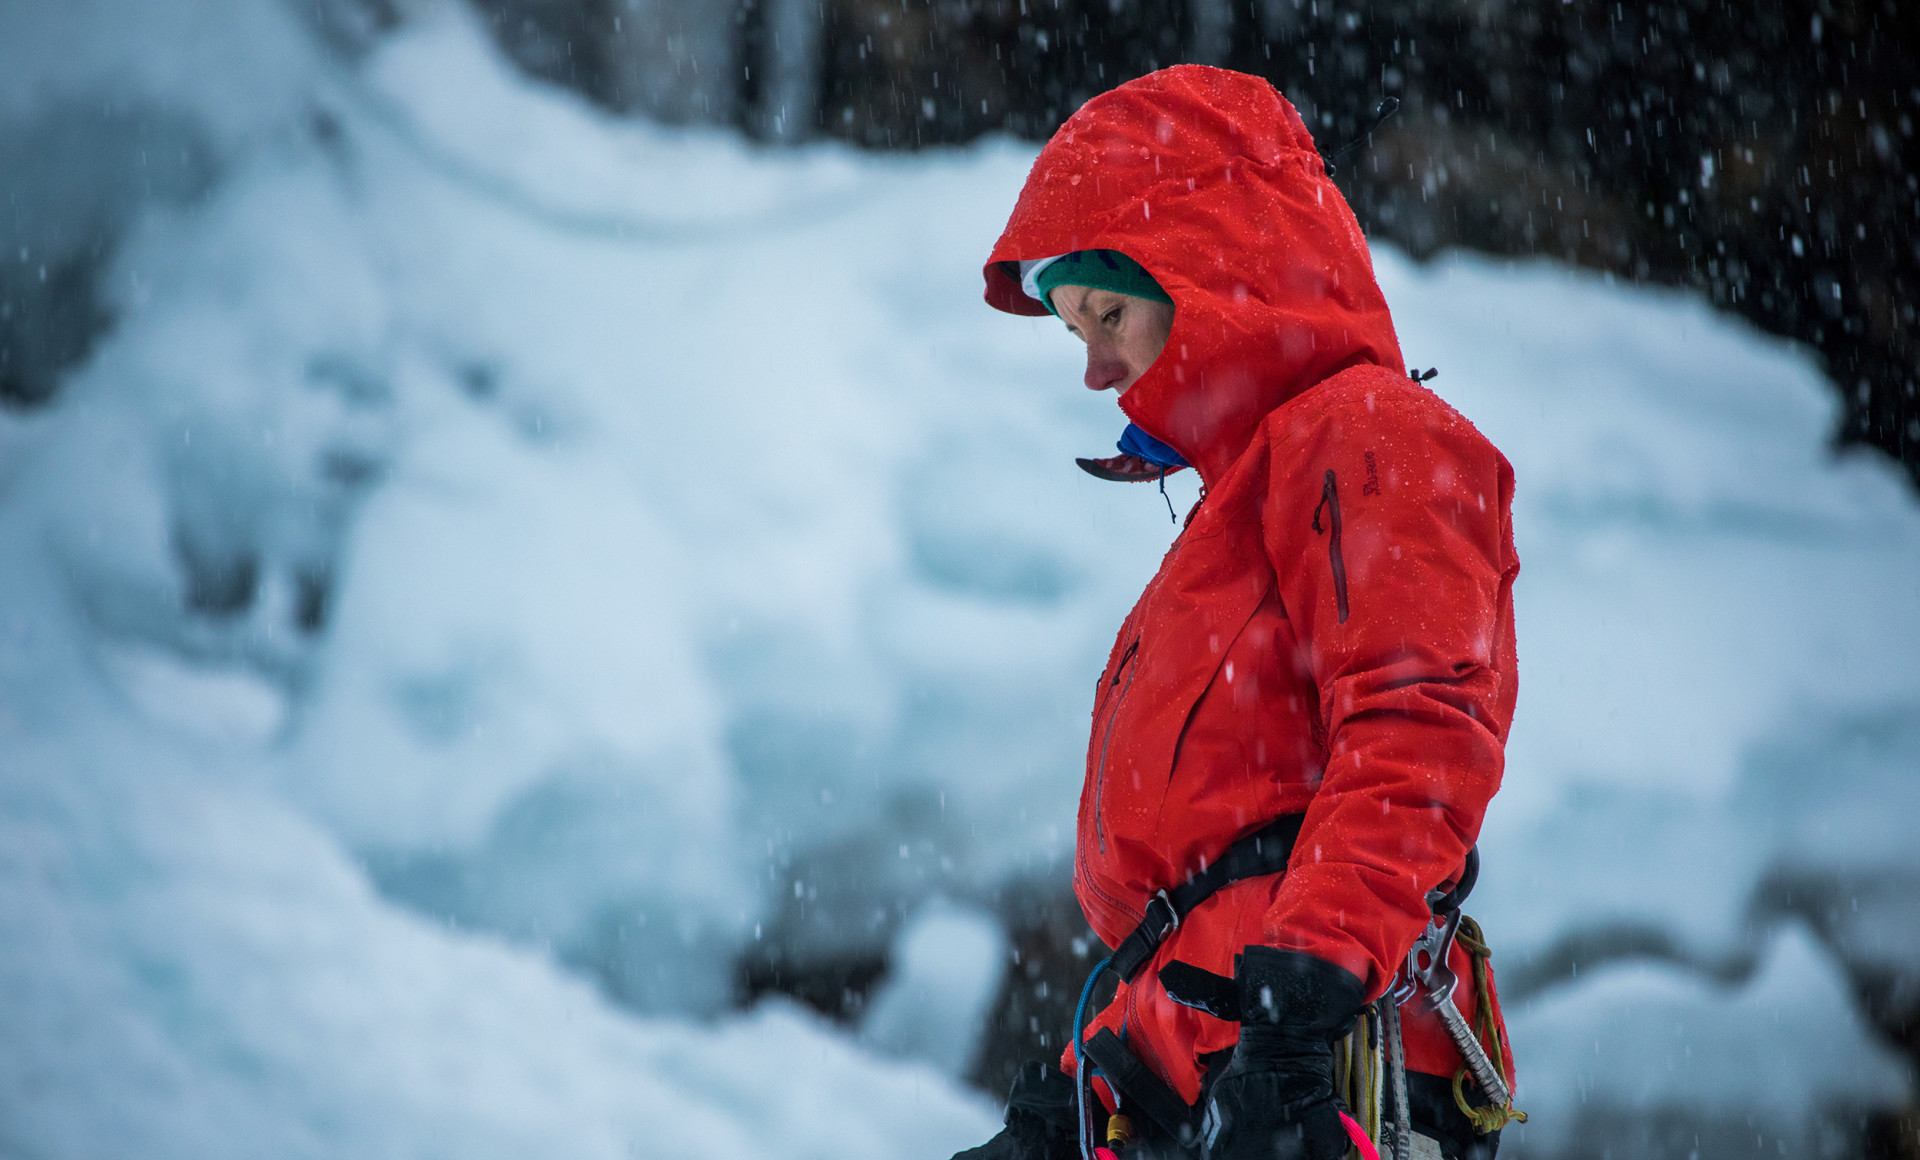 Ines Papert was the first to take on the ice wall.